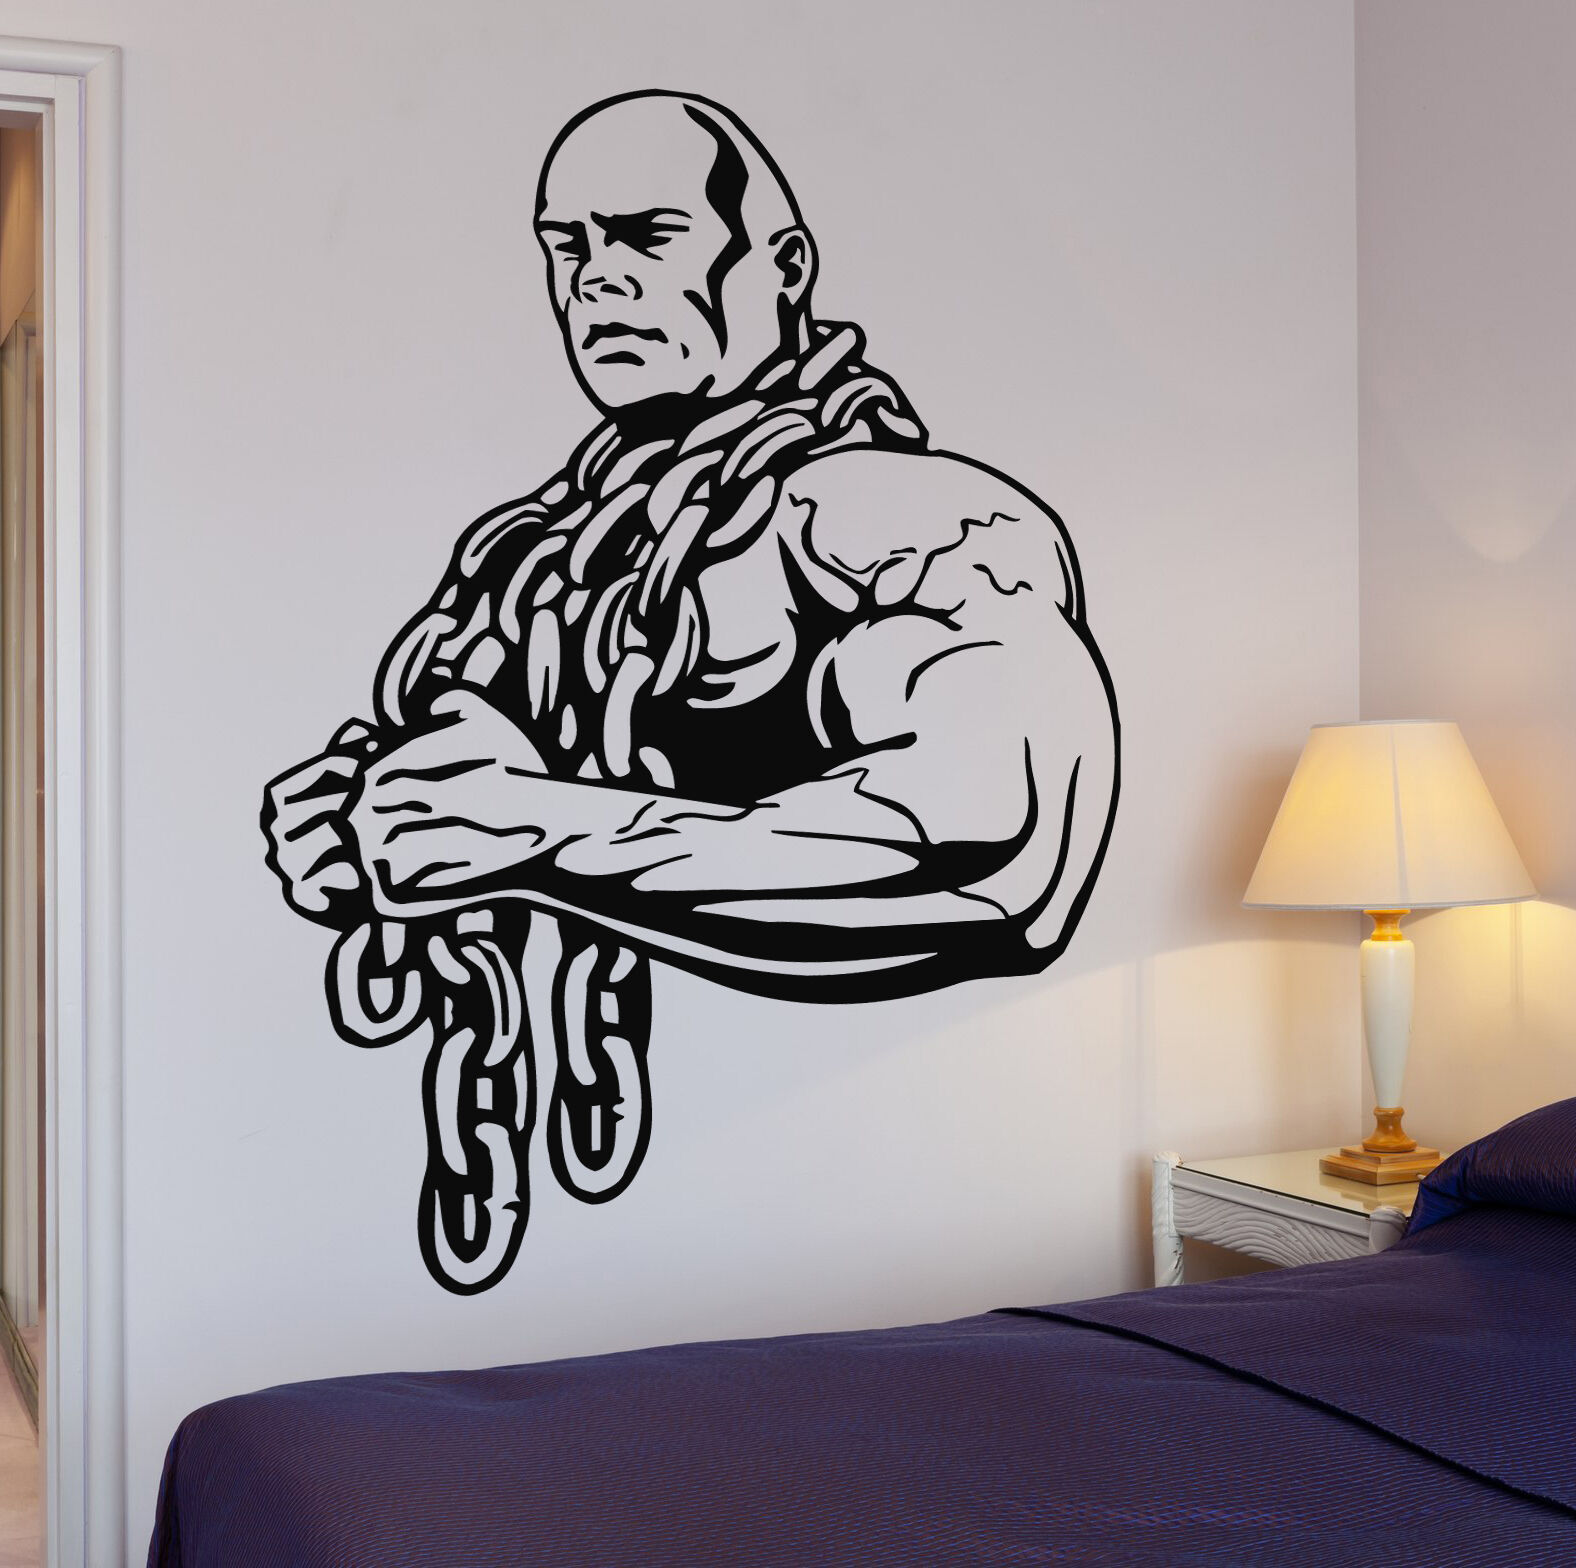 Sports bodybuilding wall decals gym wall decoration bodybuilding muscle men sport cool decoration living room bedroom decor js16